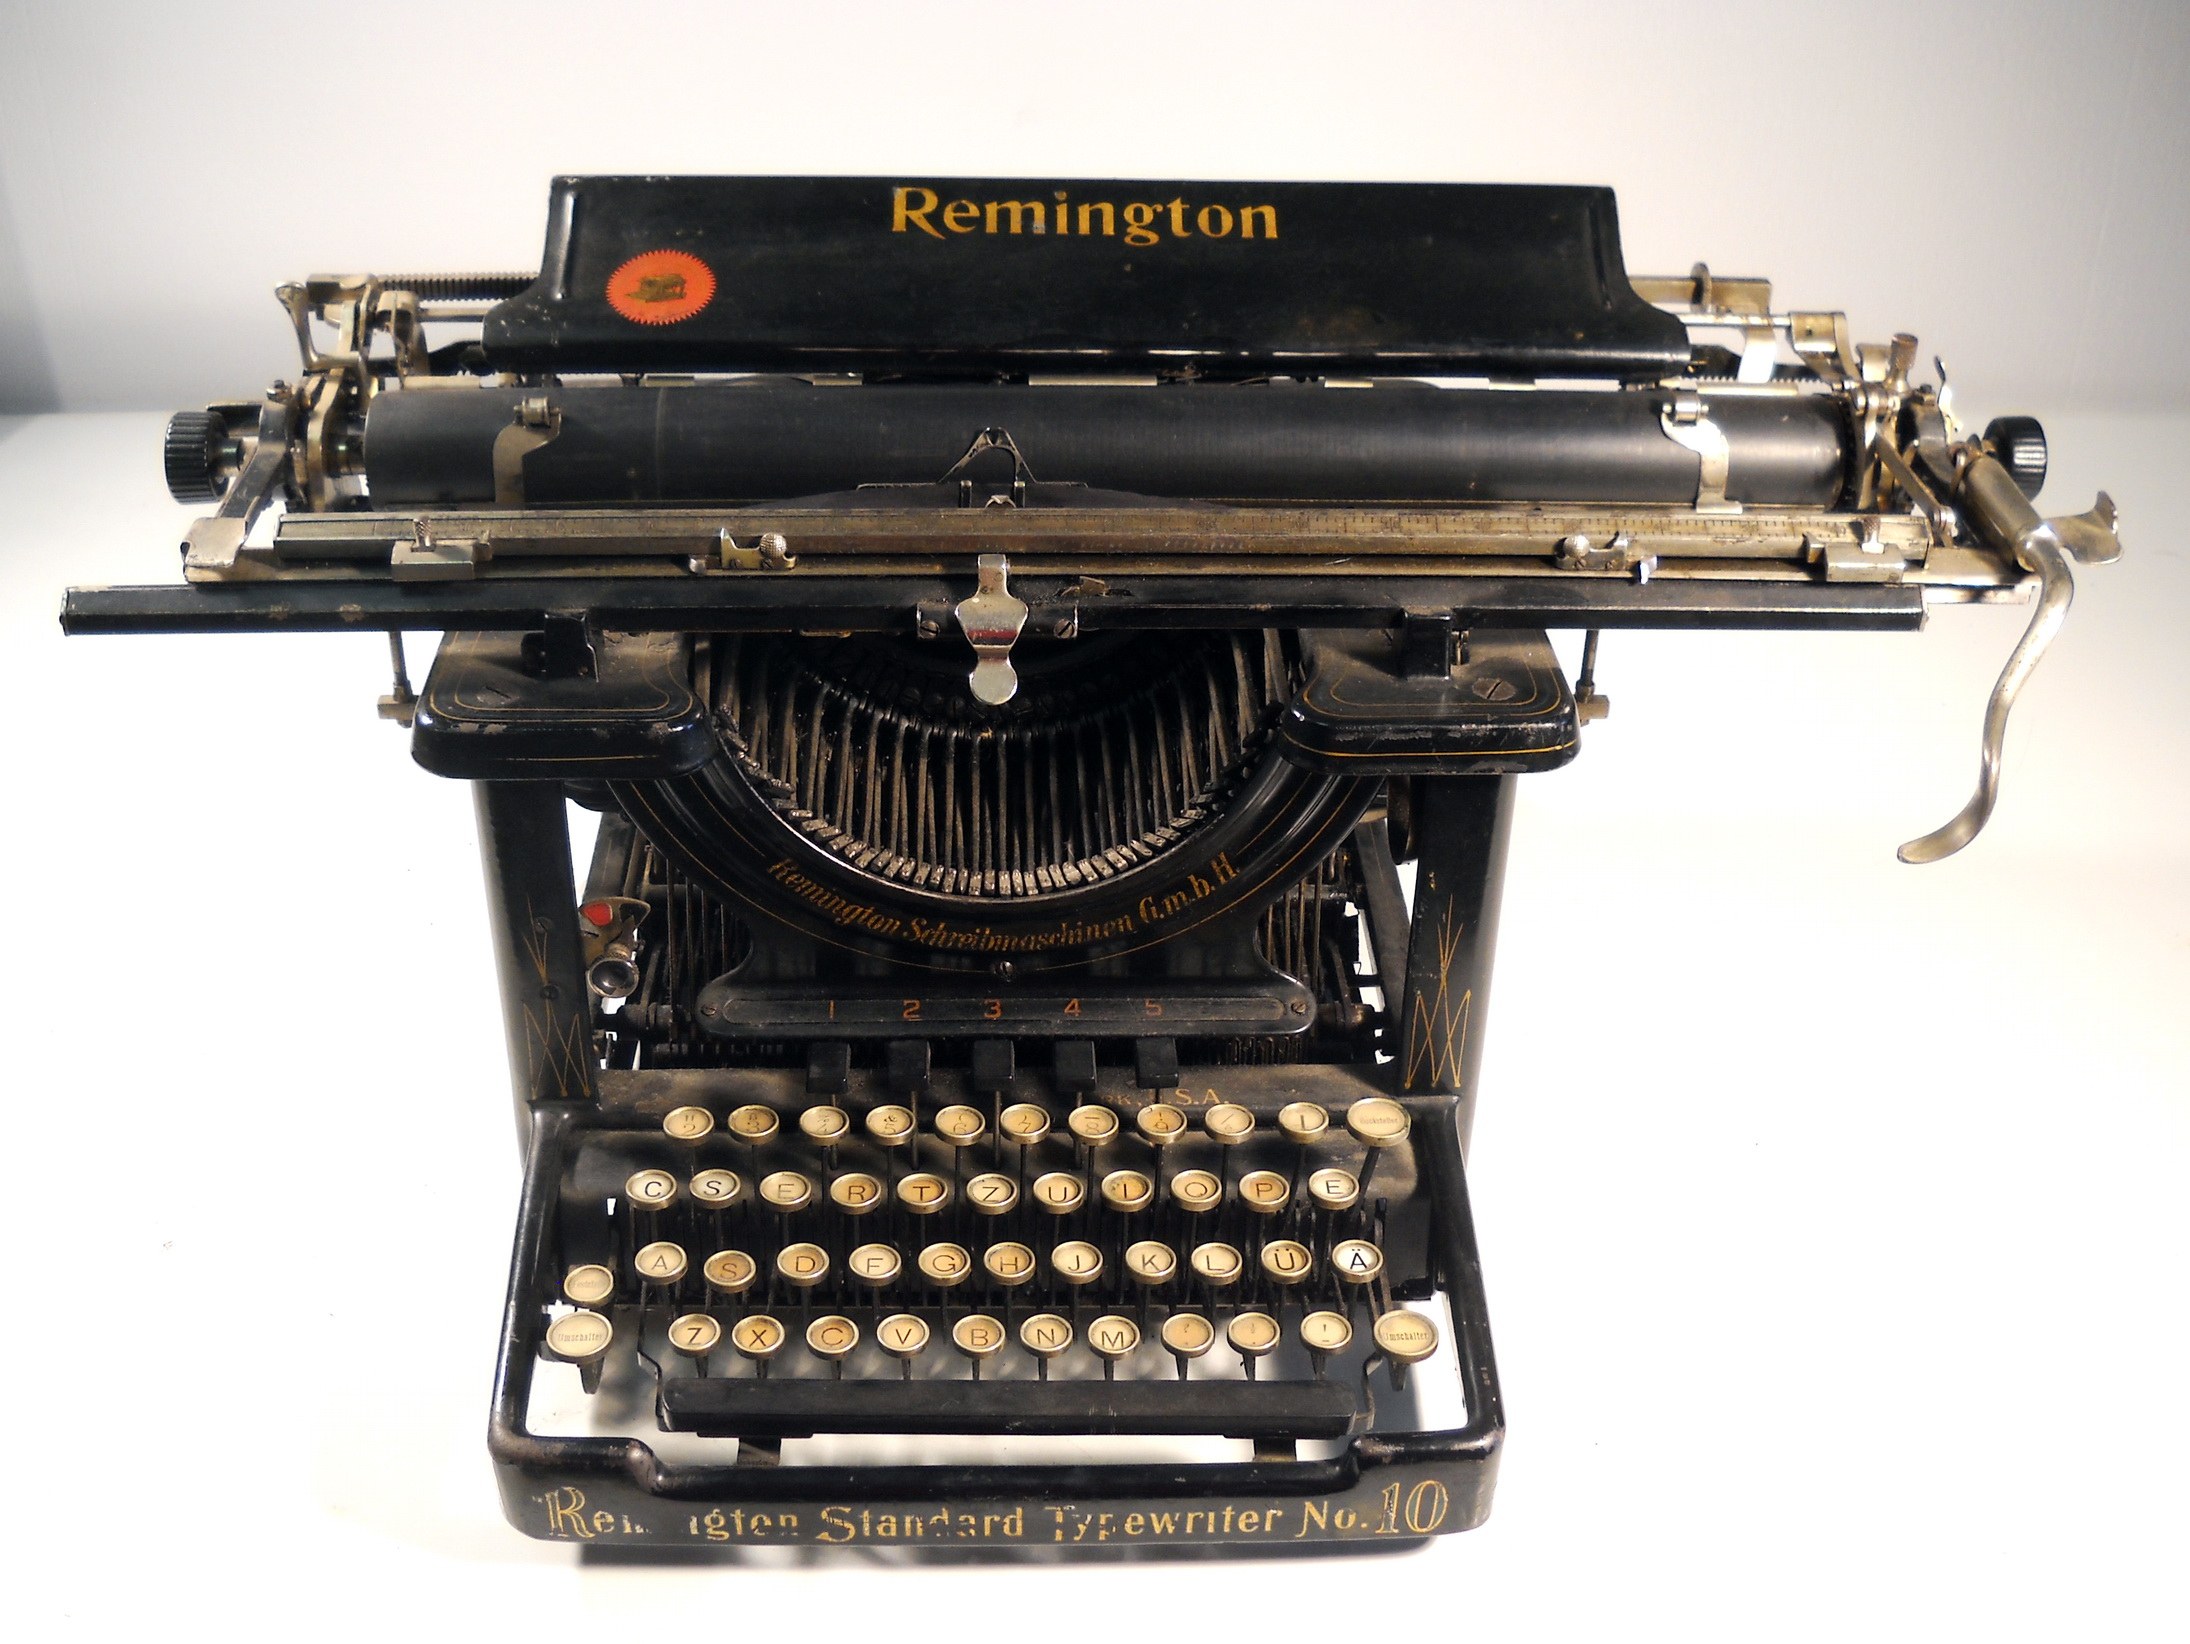 dating remington typewriters This page may be out of date how much are antique typewriters worth remington typewriter with unusual woodgrain finish offered for $185 on ebay.